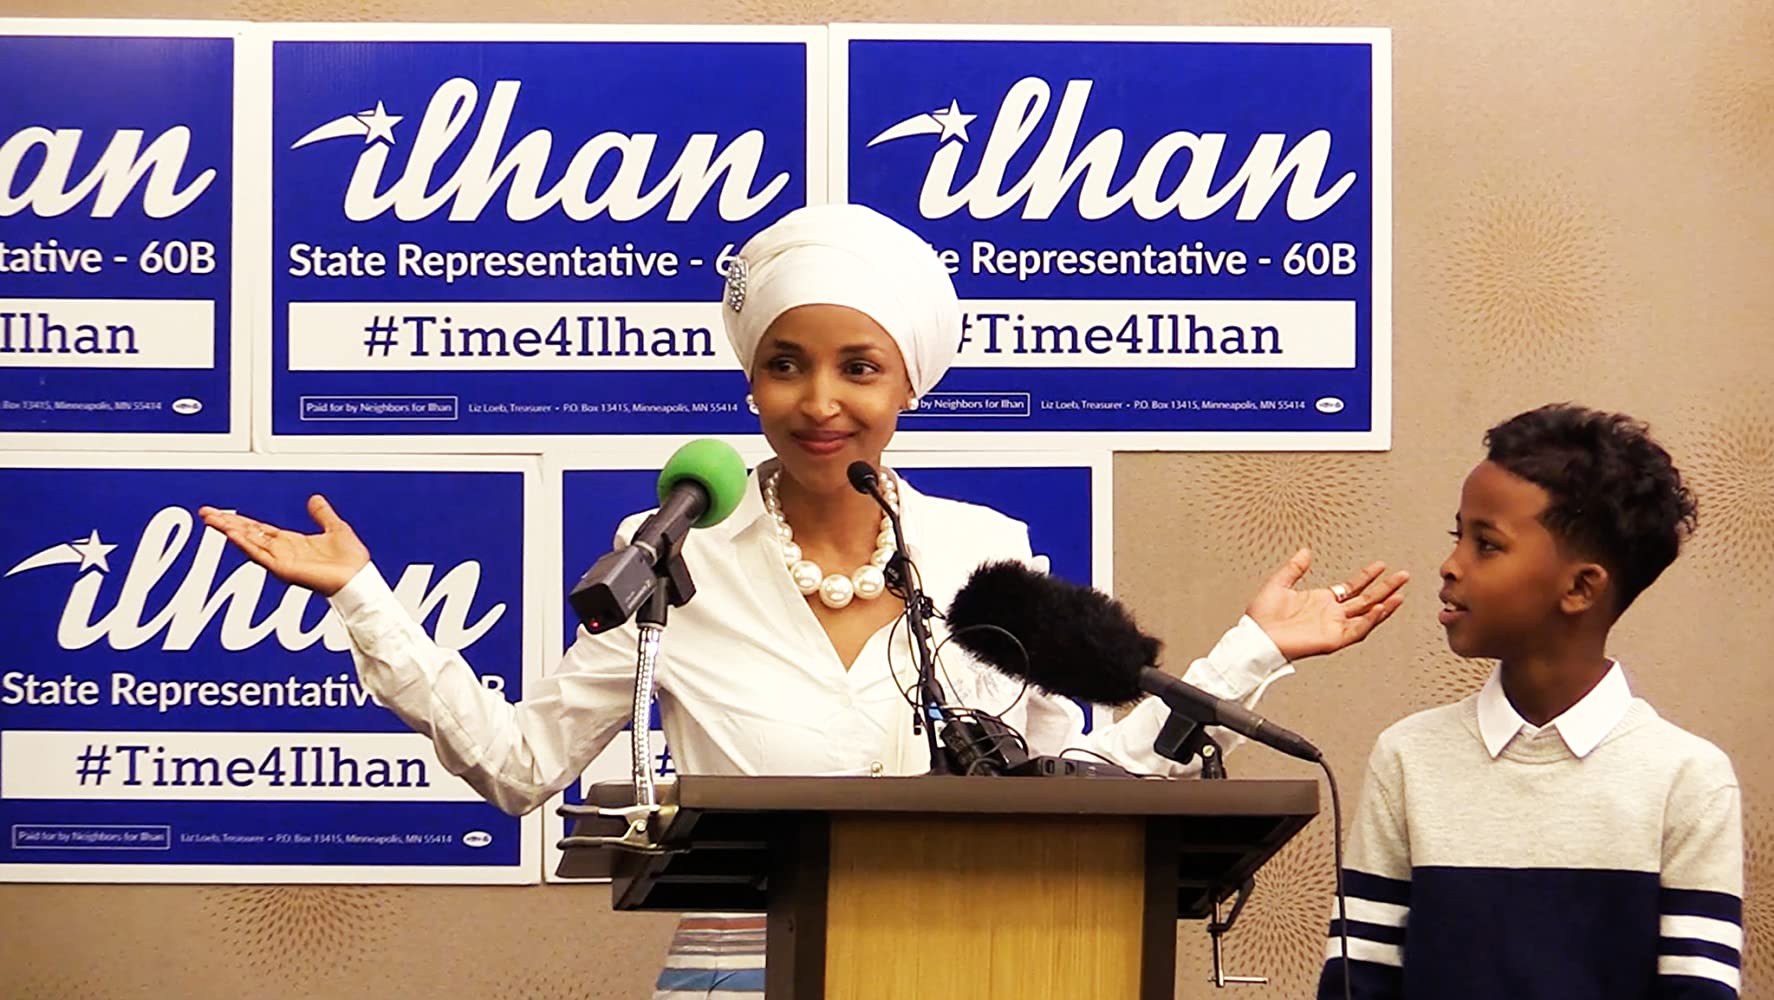 Ilhan Omar in Time for Ilhan (2018)